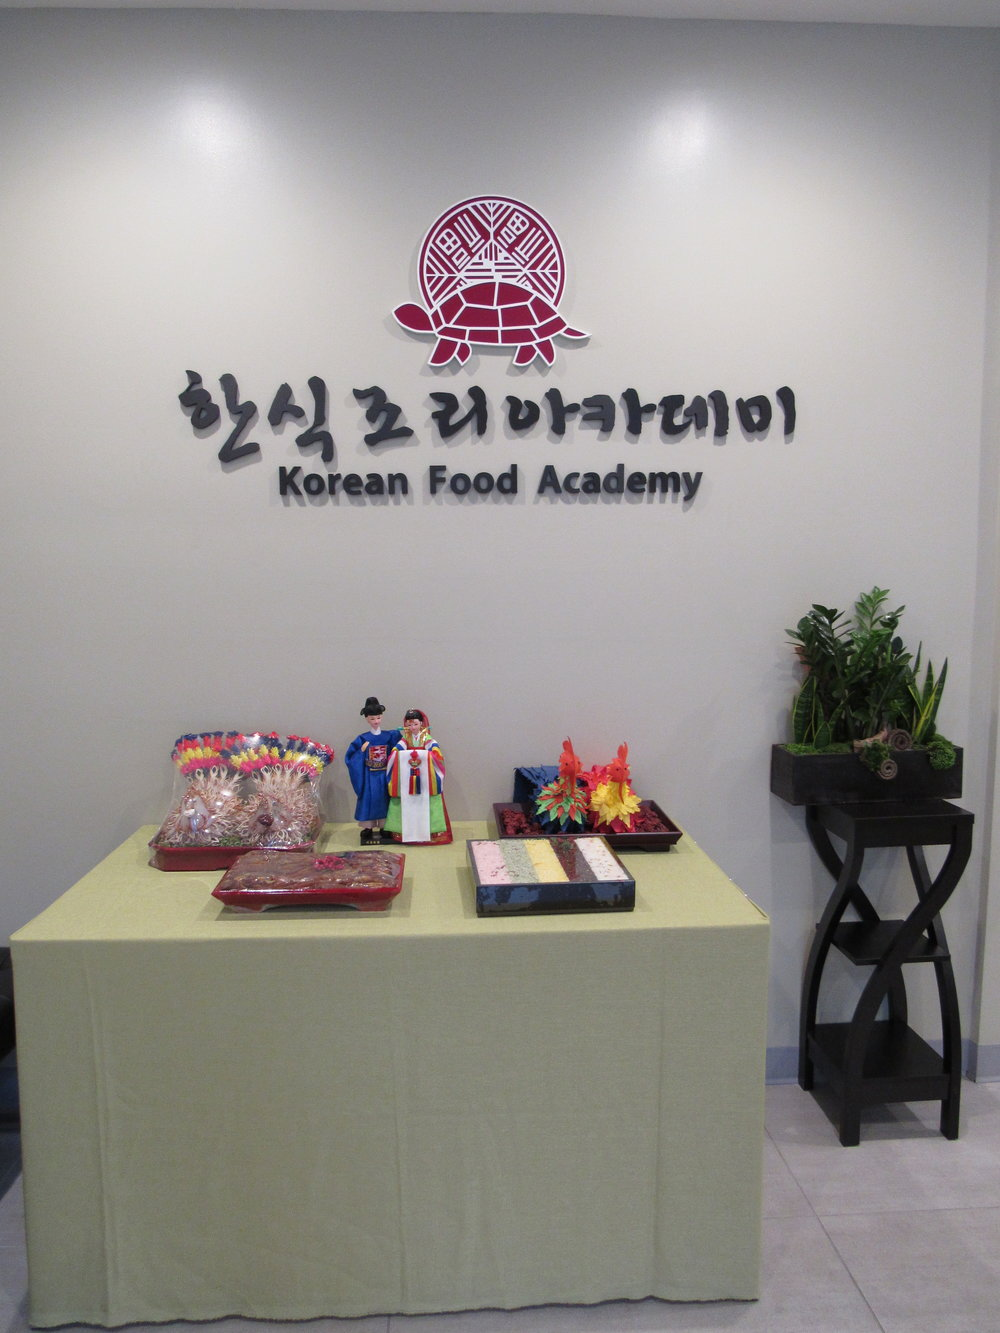 LA Korean Food Academy